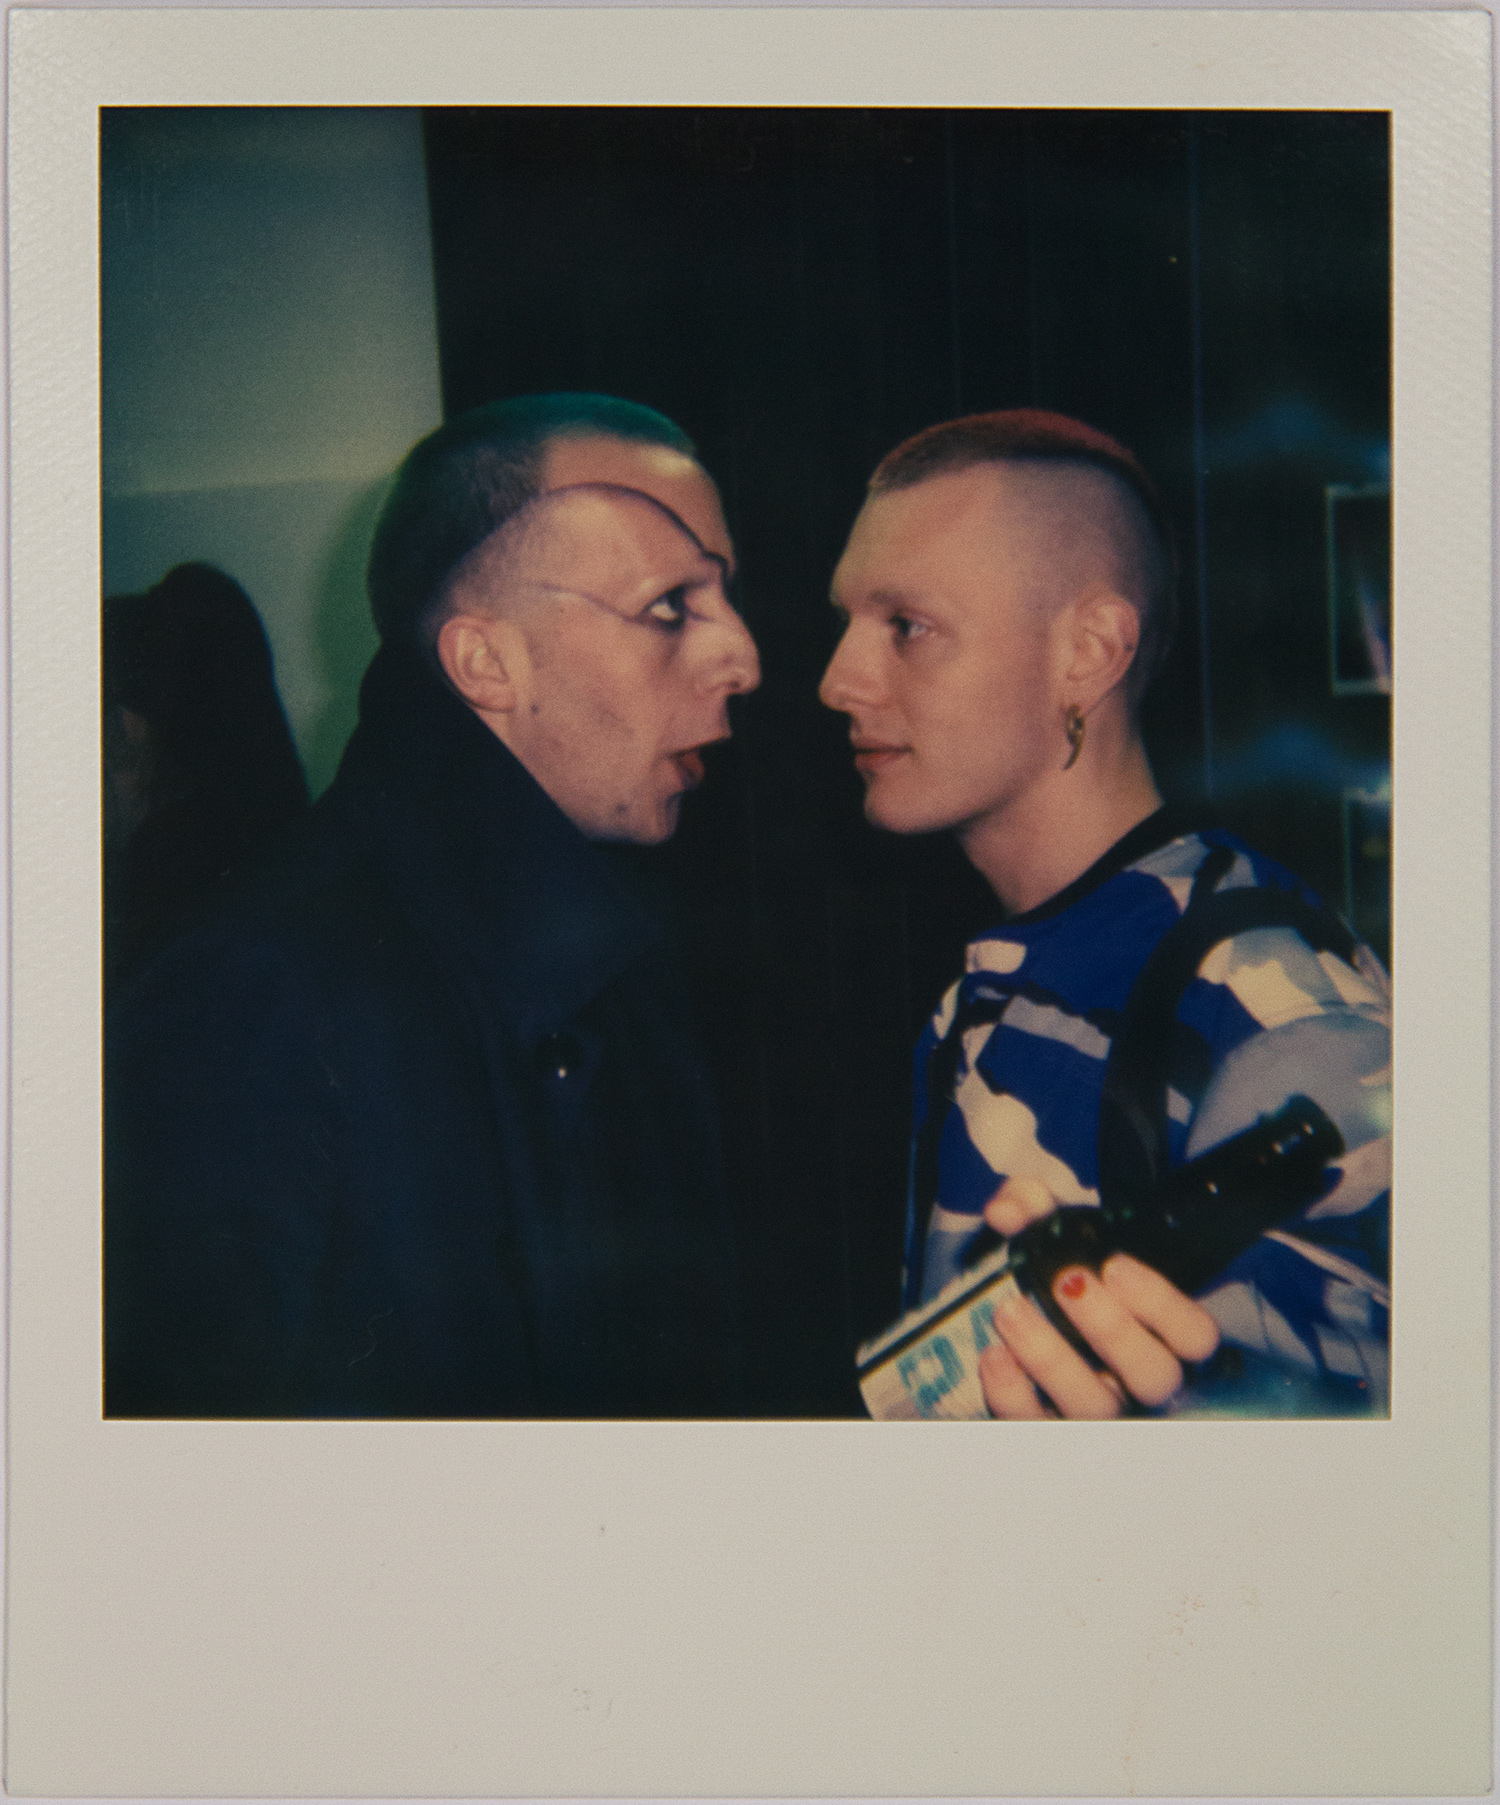 PYLOT ISSUE 04 LAUNCH PARTY IMPOSSIBLE PROJECT 04